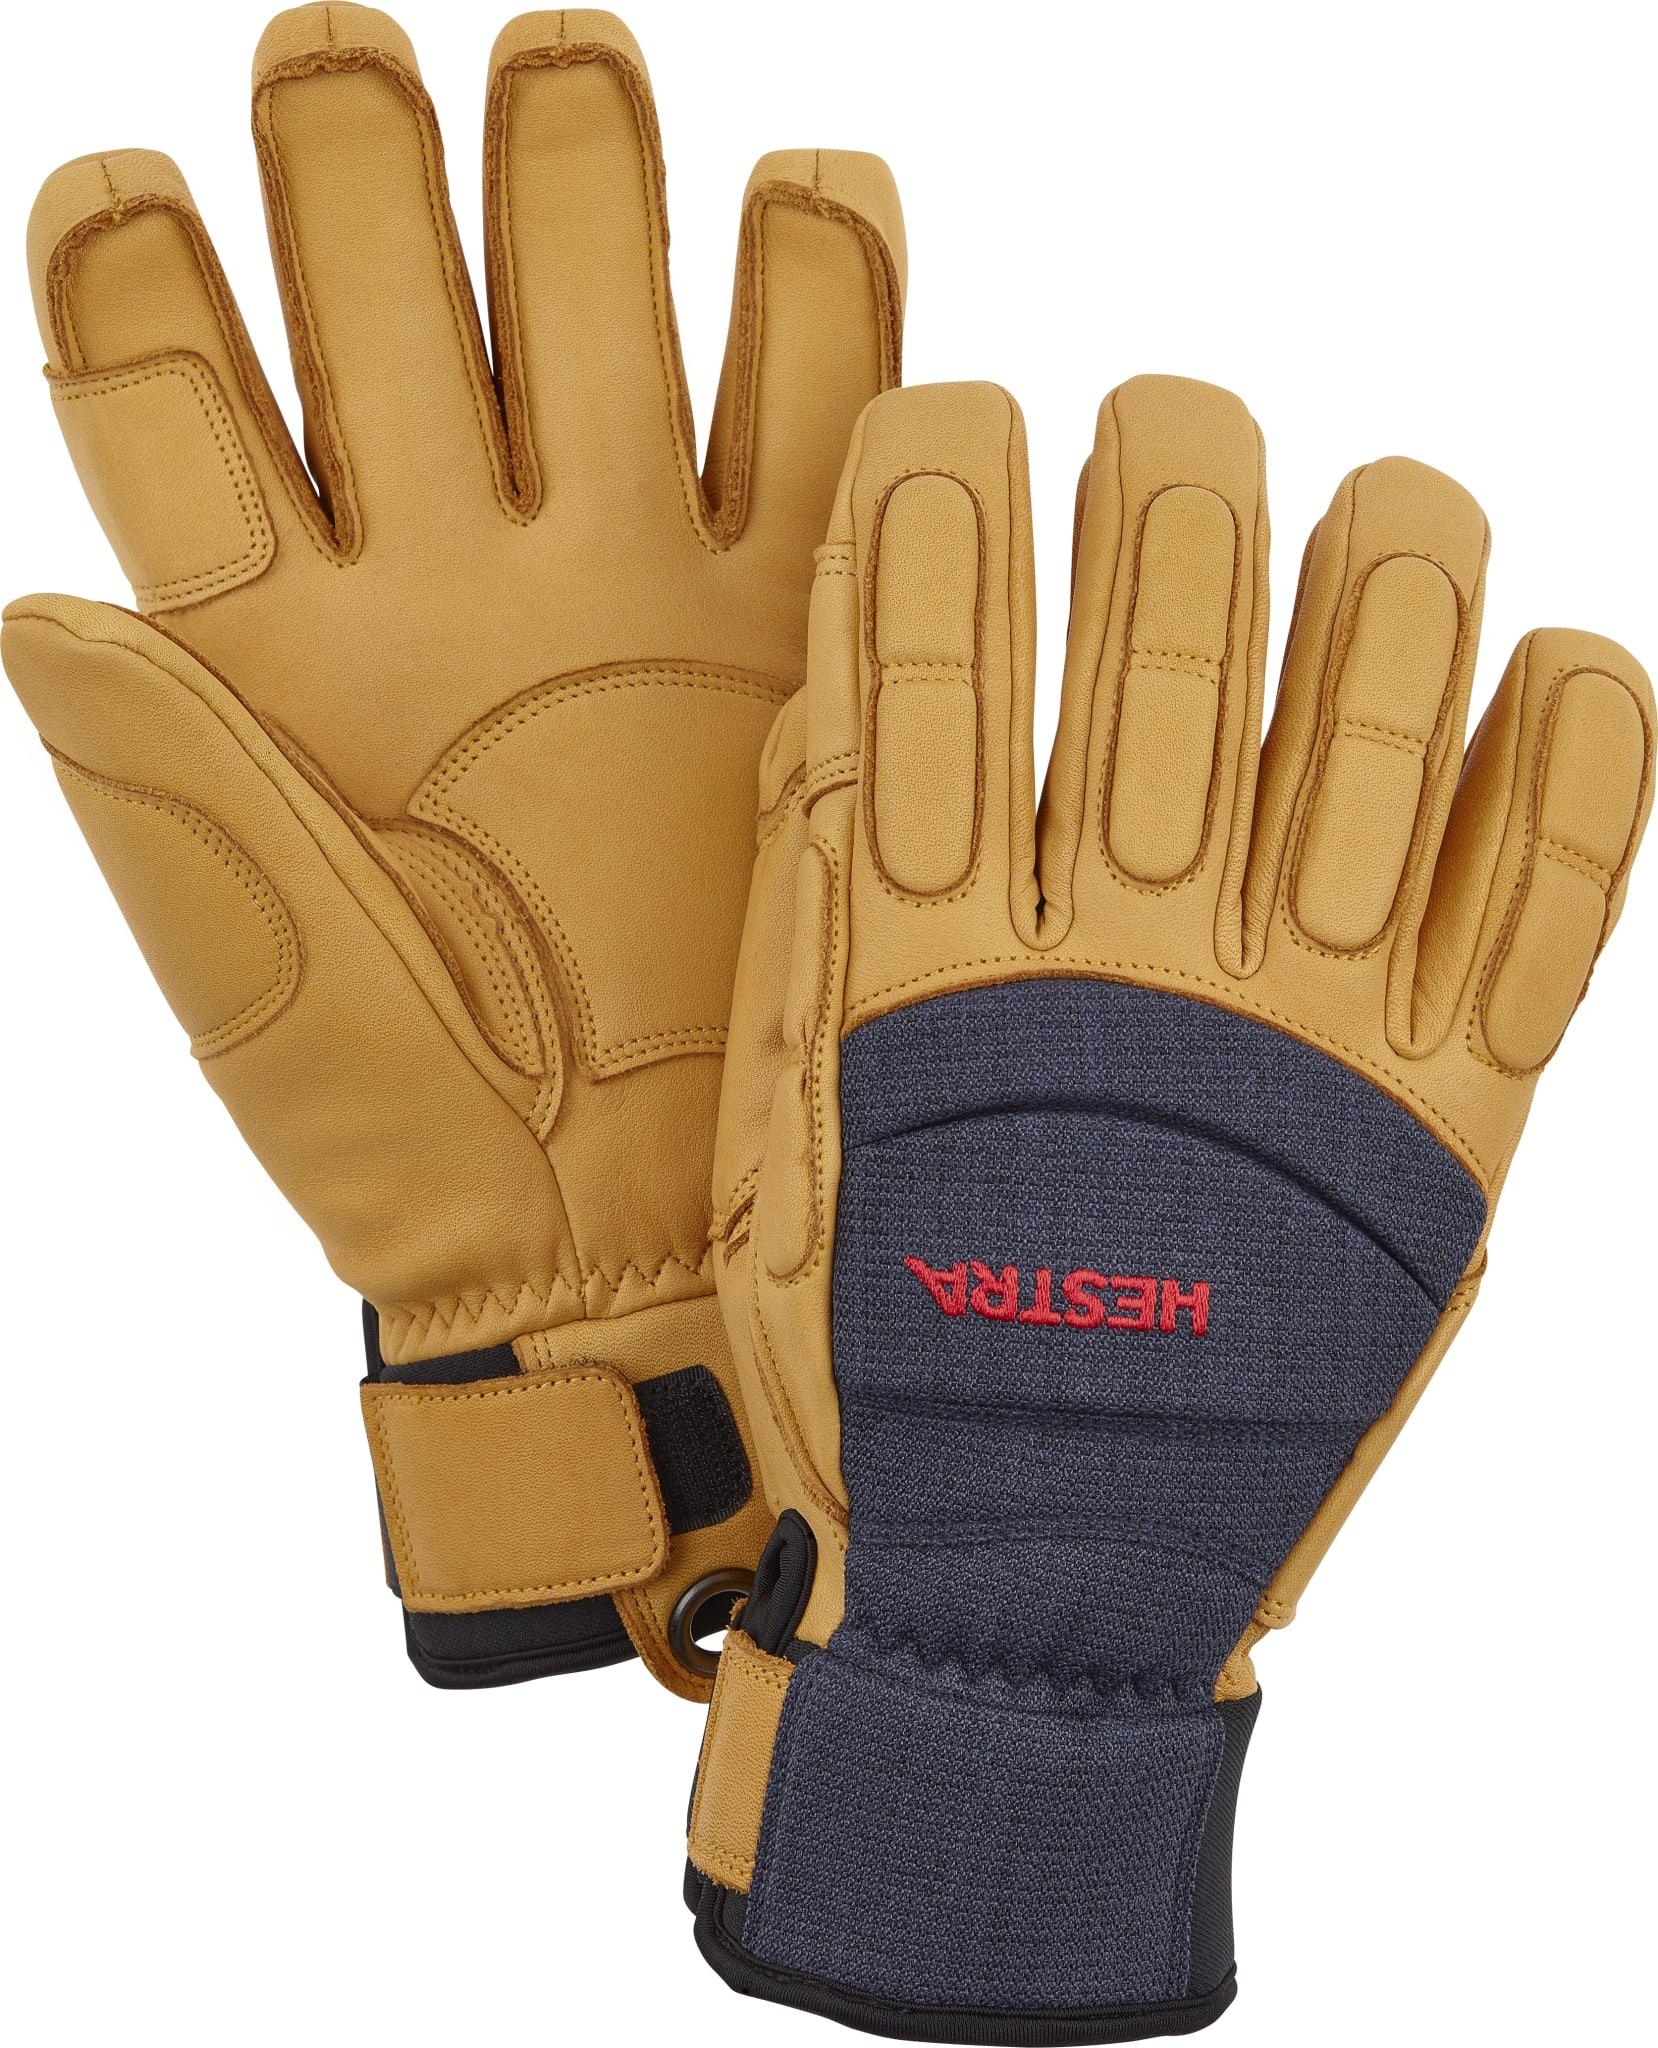 Vertical Cut CZone Gloves